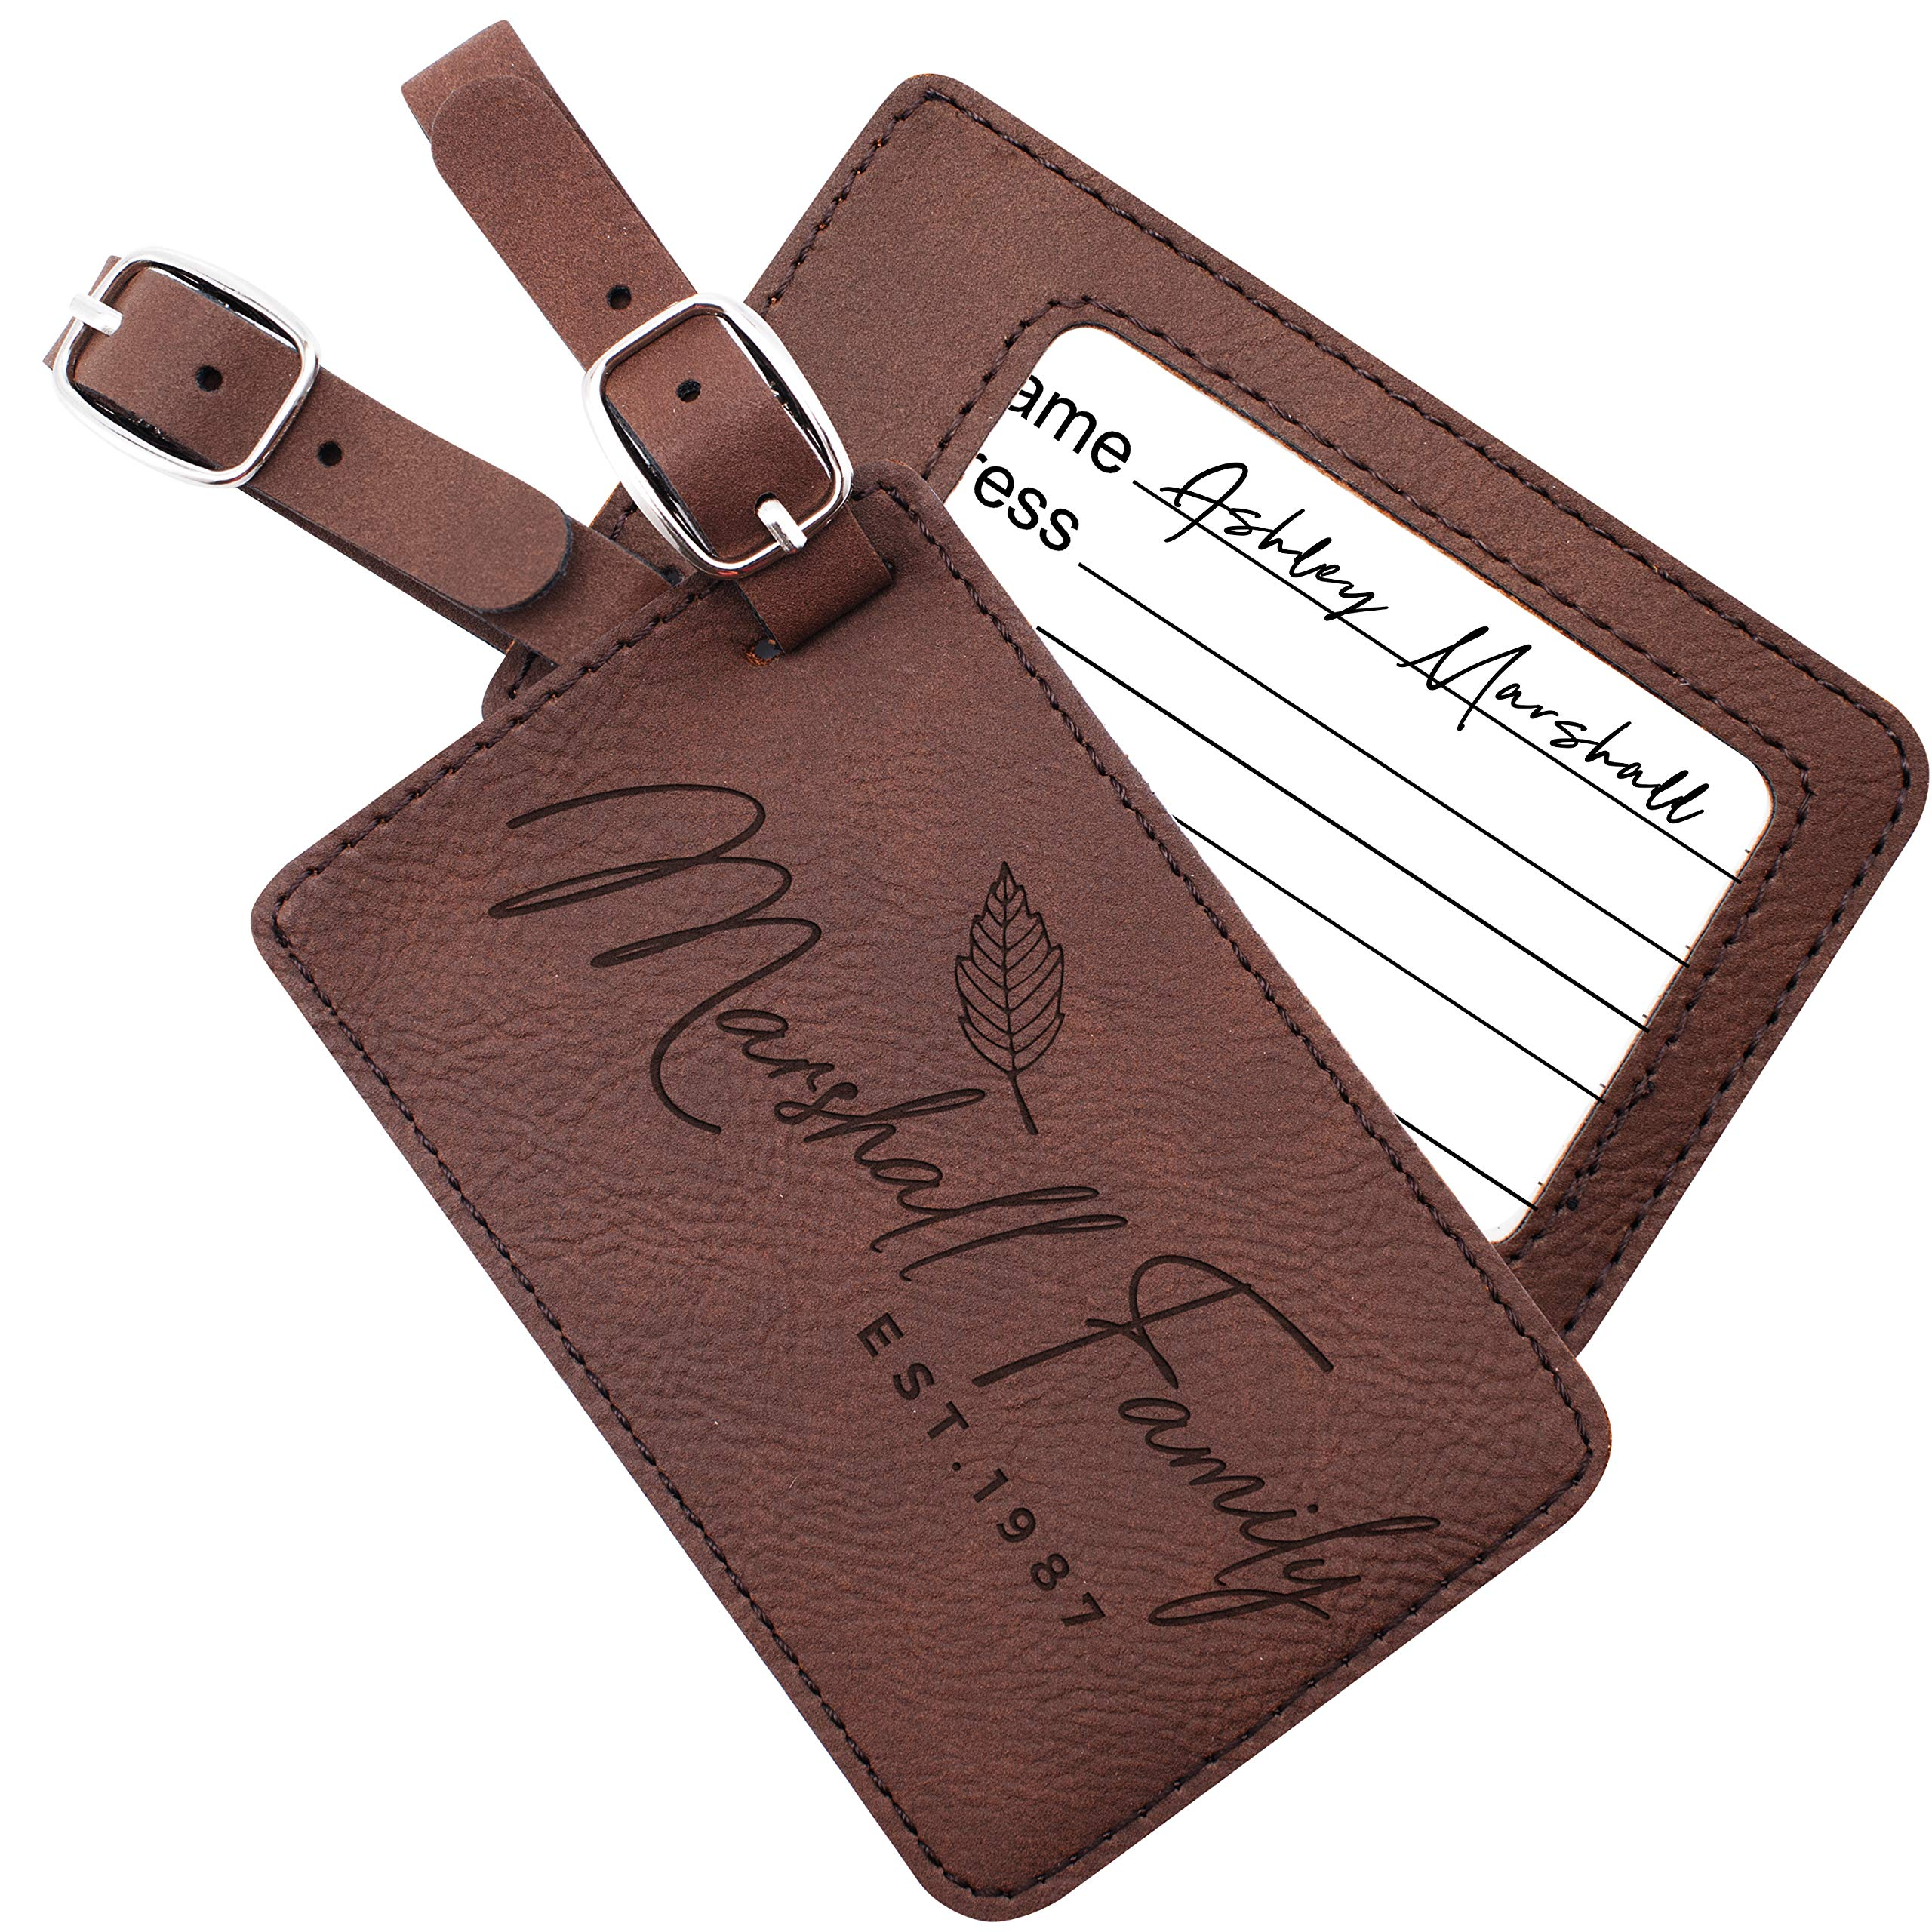 Personalized Leather Luggage Tags Gifts with Engraved Design and Name - Traveler Gifts for Women, Men, Kids - Custom Suitcase Tag for Honeymoon - Christmas Gifts for Travelers #10 by United Craft Supplies